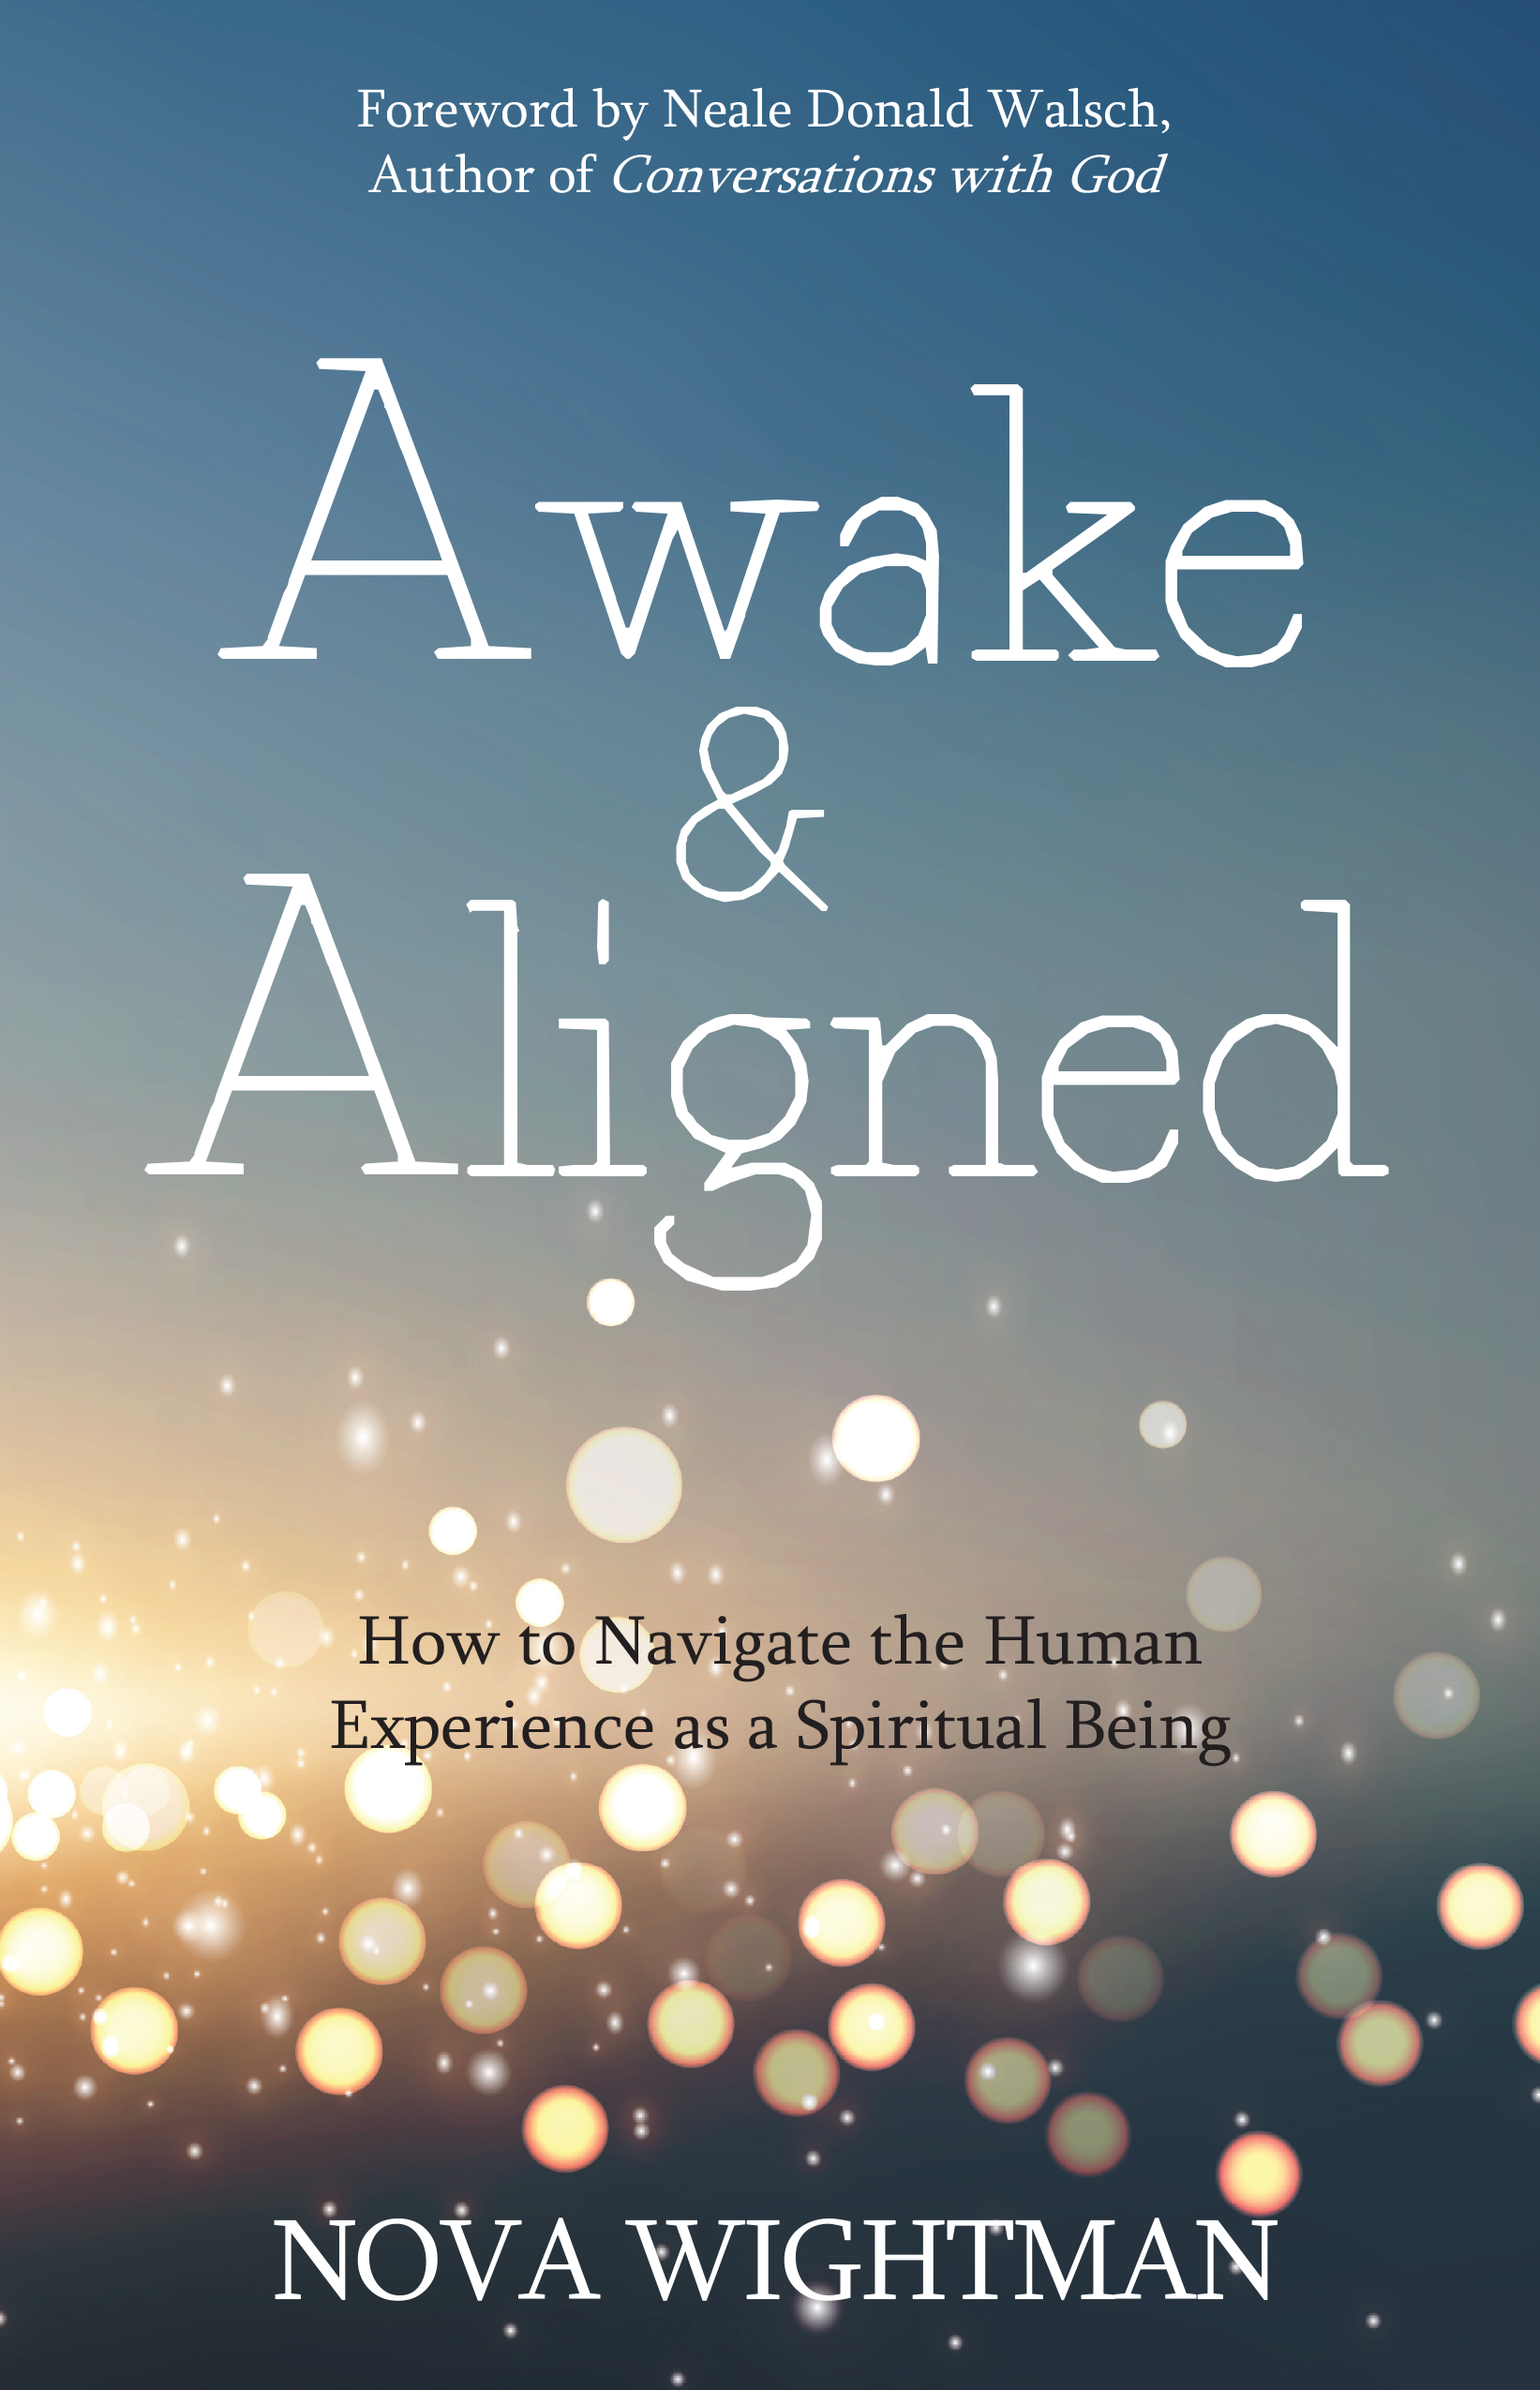 awake aligned cover.png